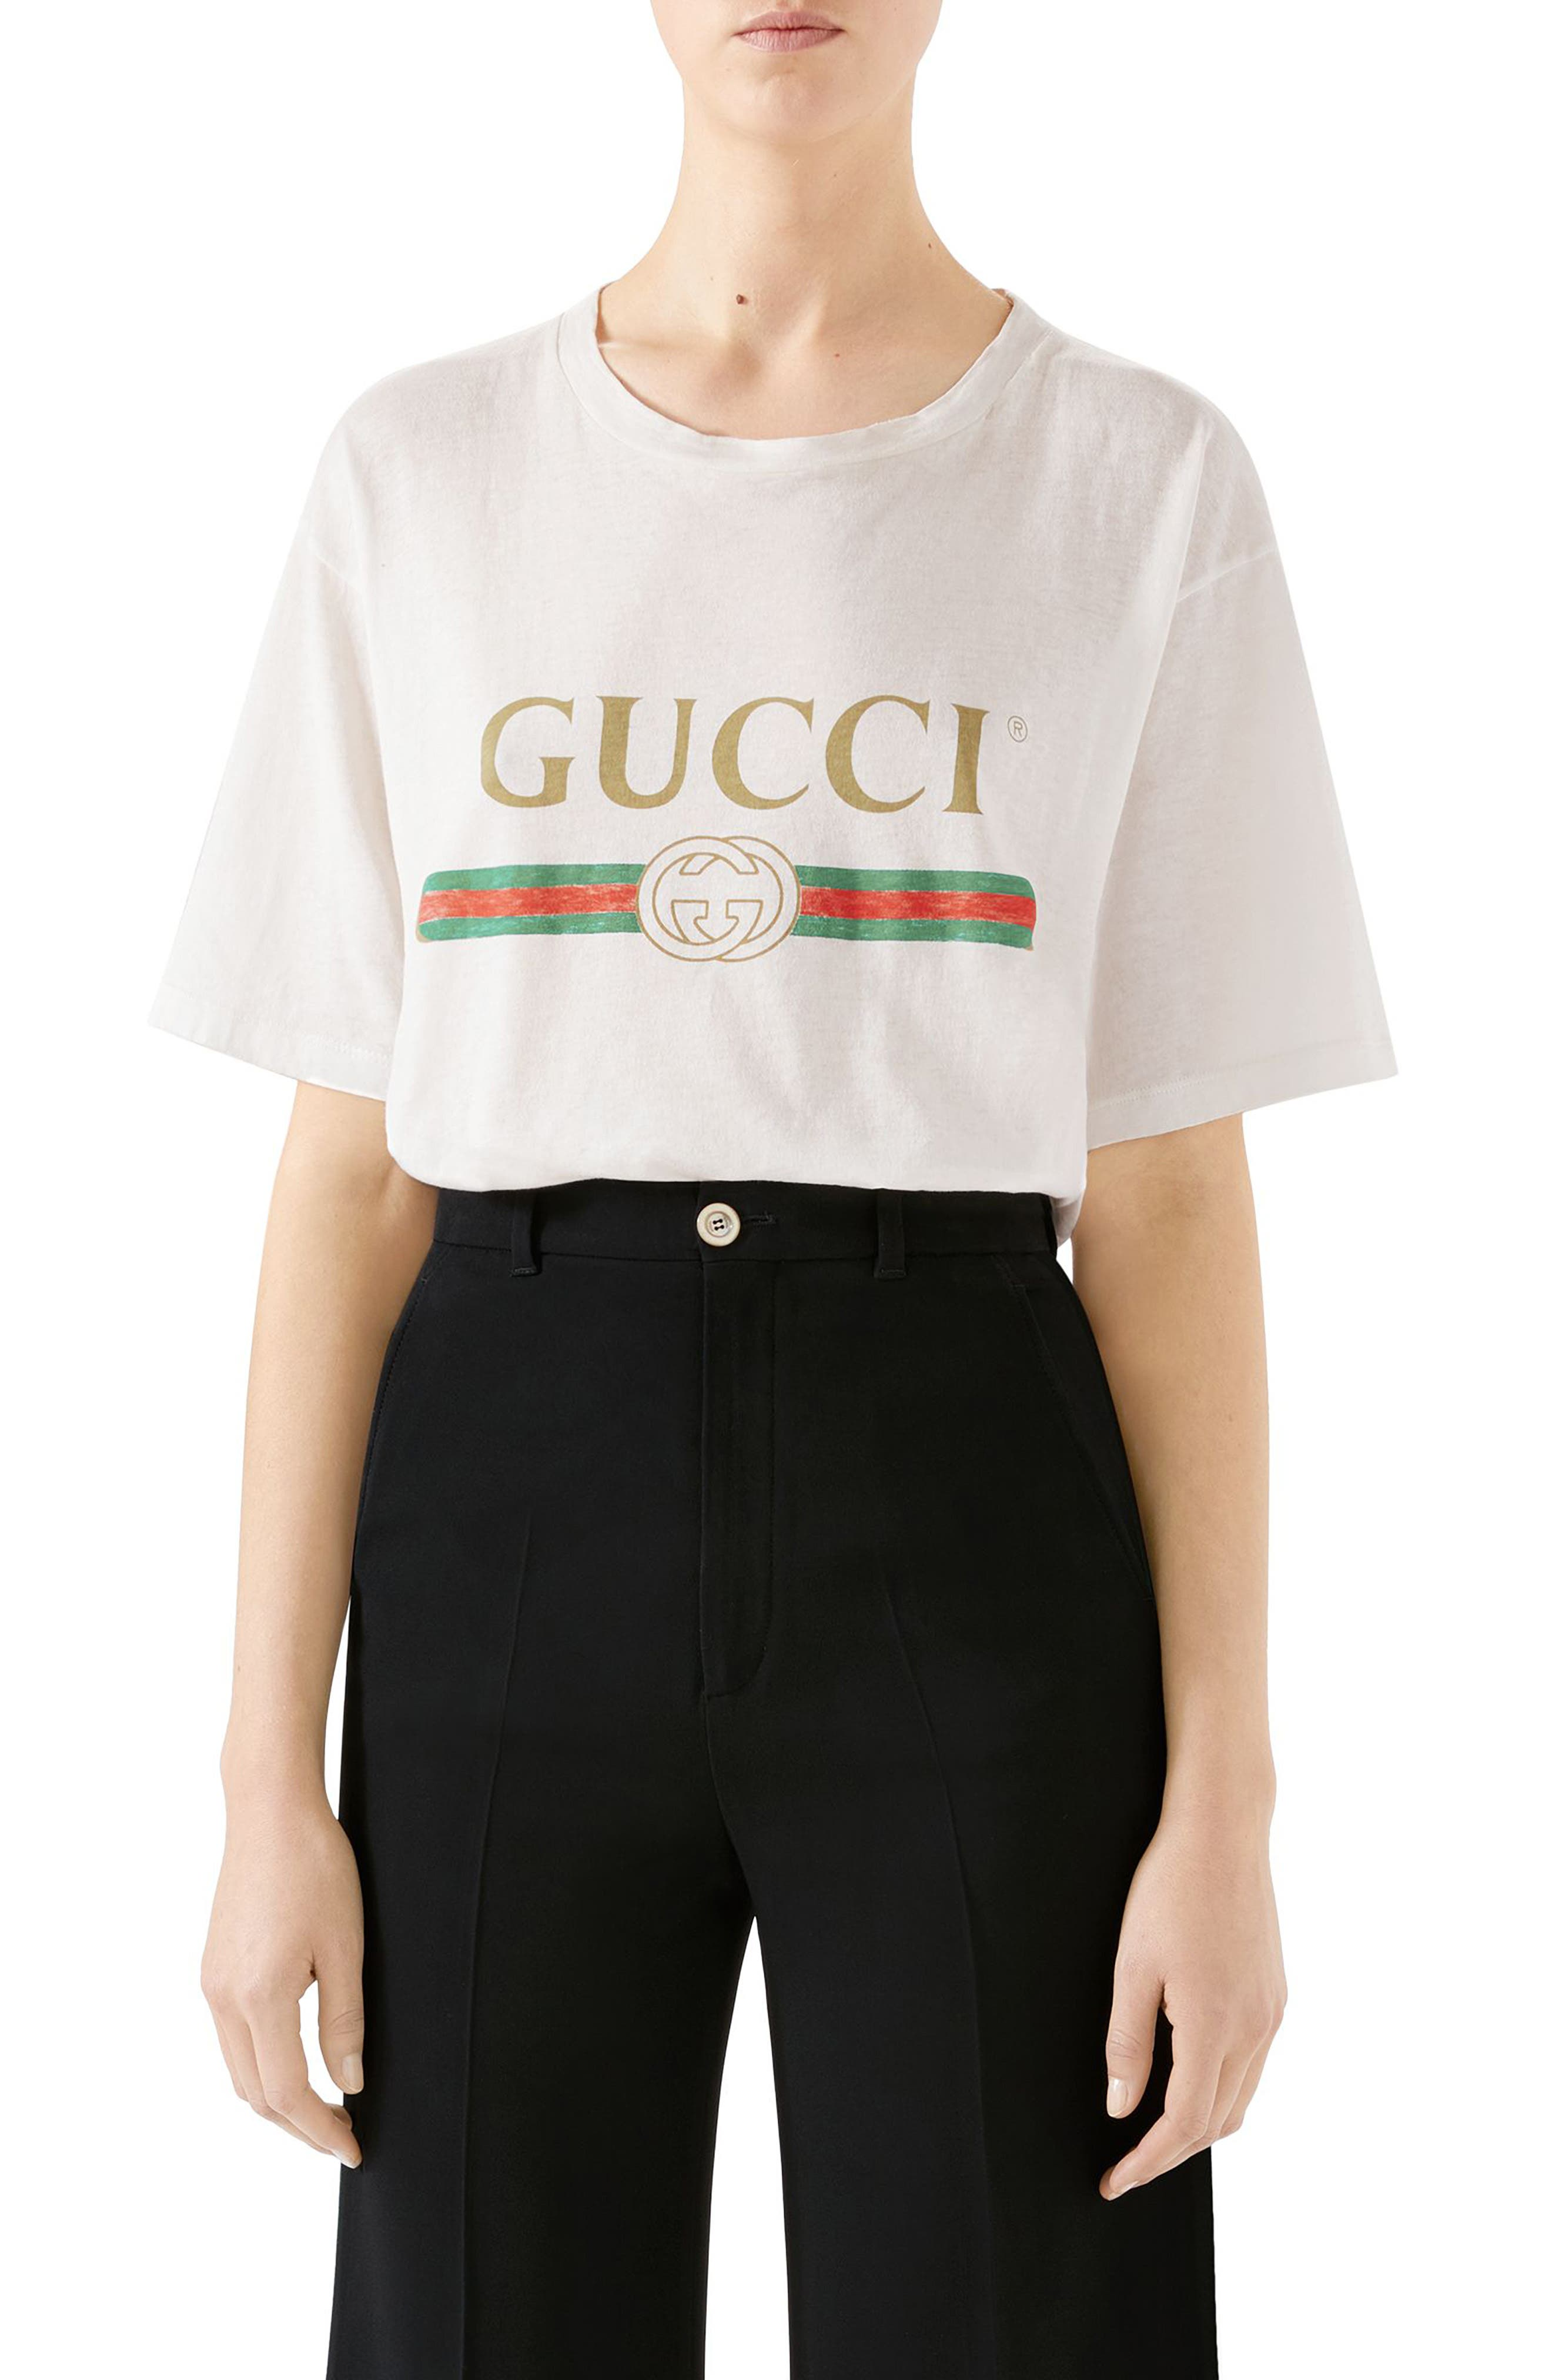 c6877981721c Women's Gucci Clothing | Nordstrom